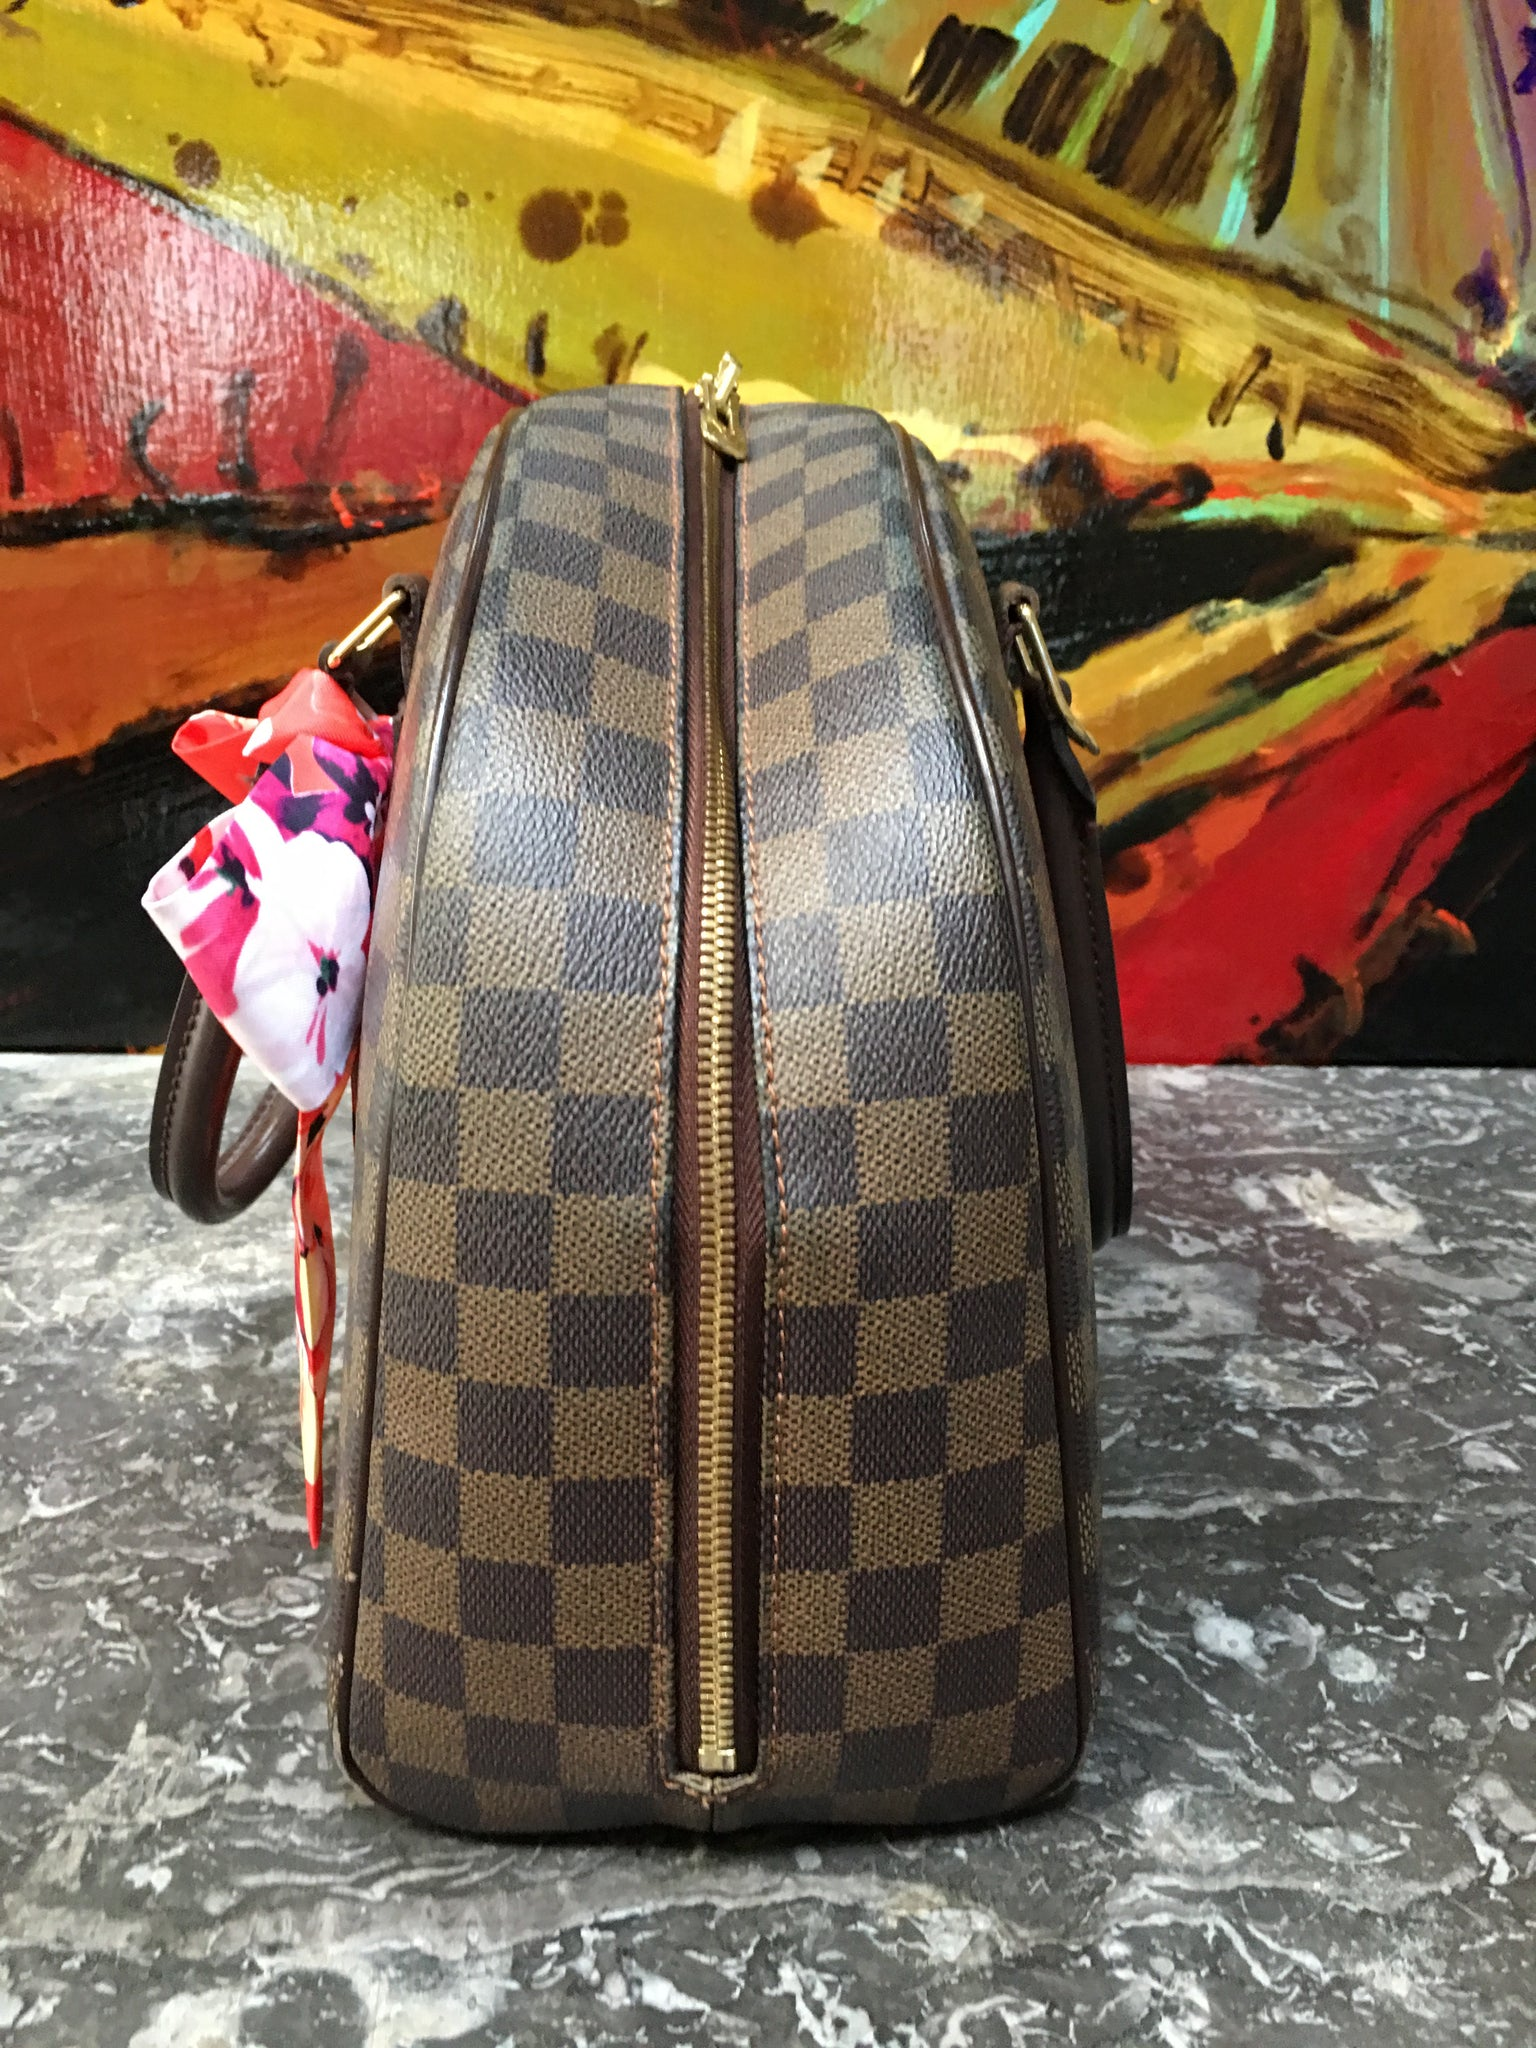 LOUIS VUITTON Damier Ebene Nolita Bag + FREE Twilly Scarf